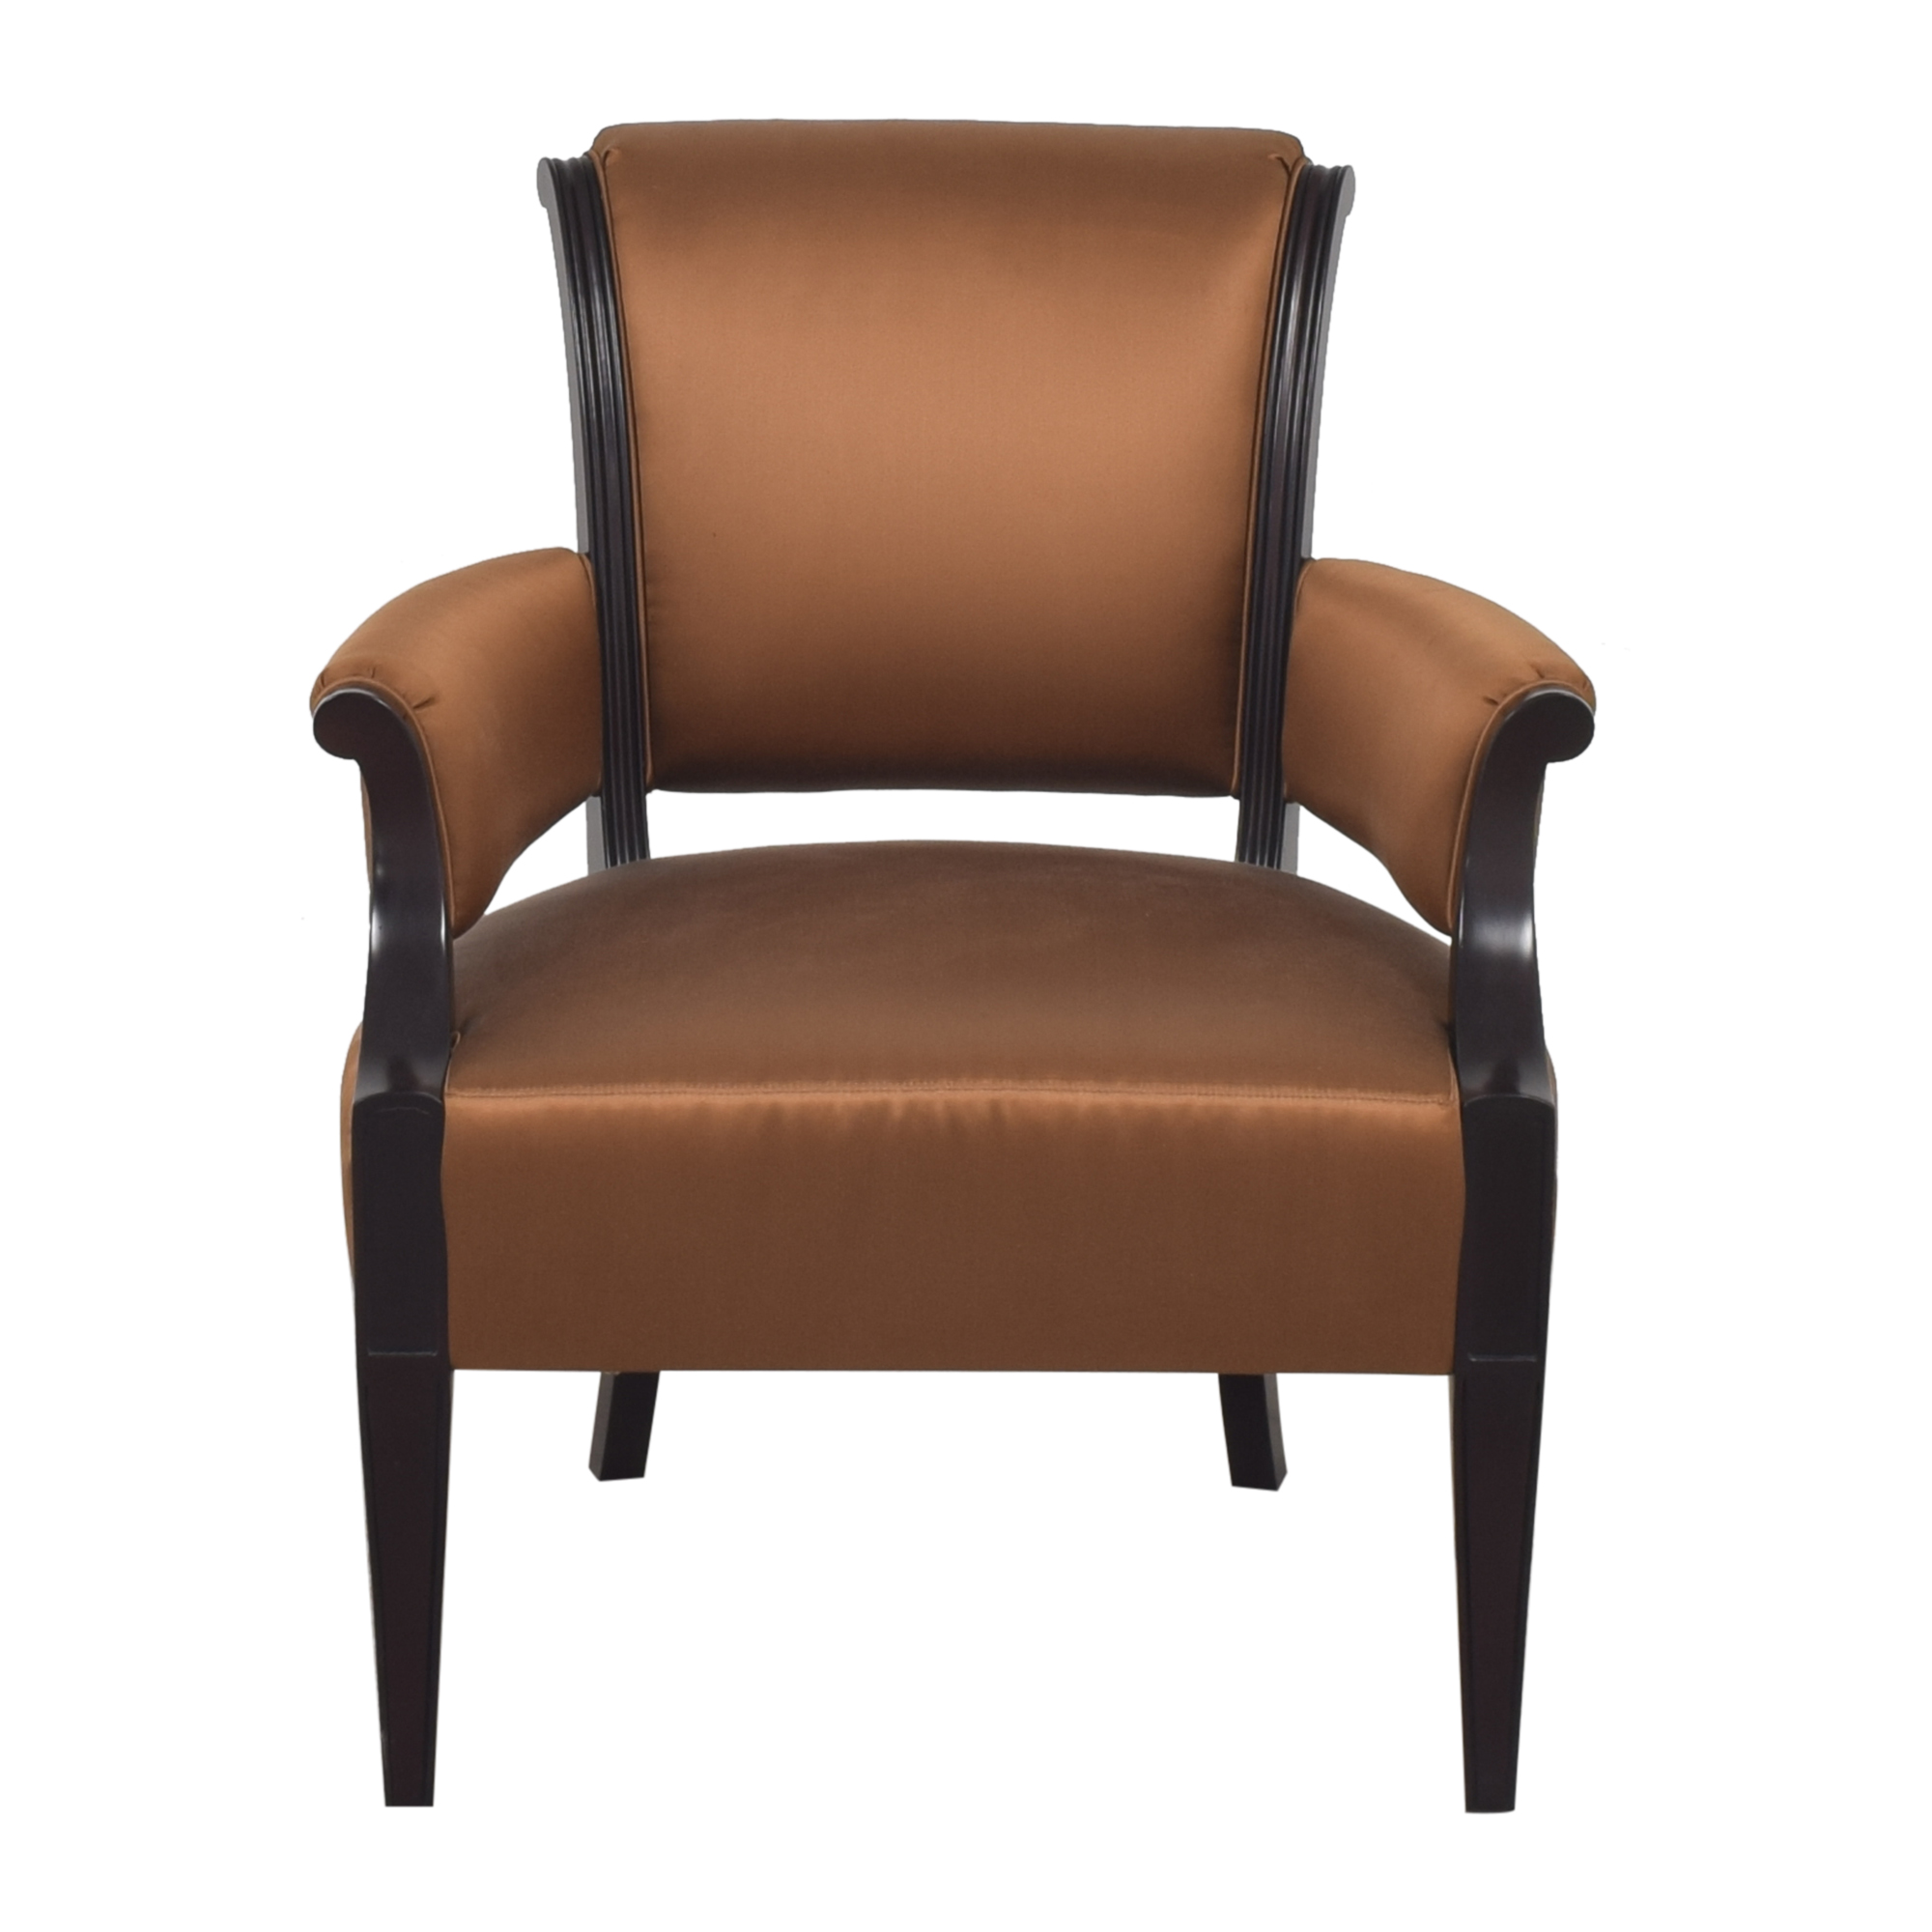 Baker Furniture Baker Furniture Barbara Barry Upholstered Chair Chairs